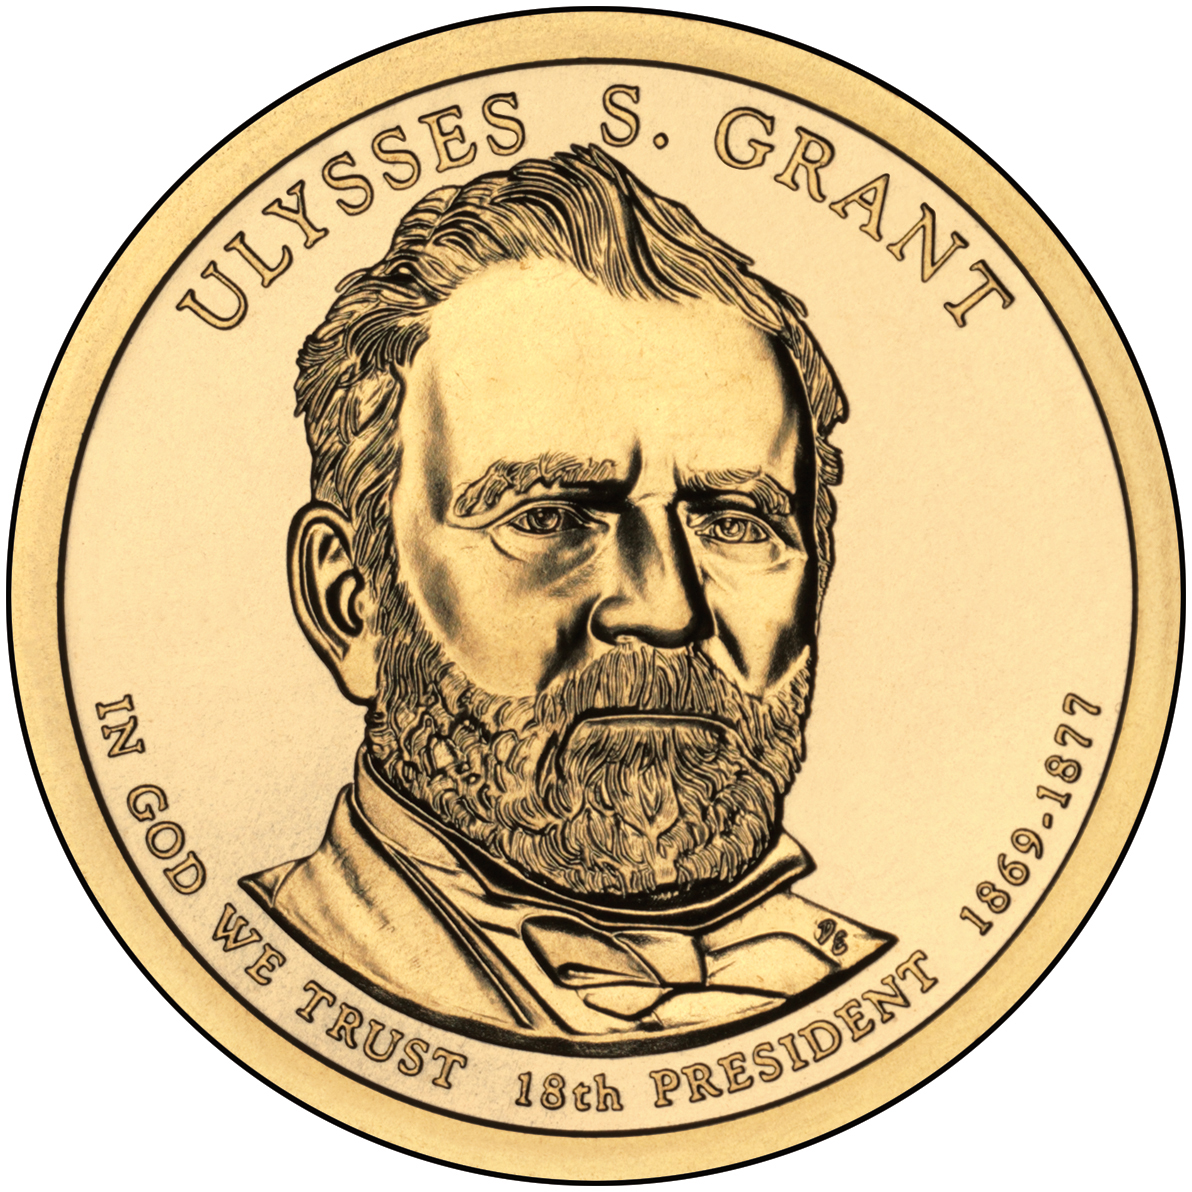 2011 Presidential Dollar Coin Ulysses S. Grant Uncirculated Obverse